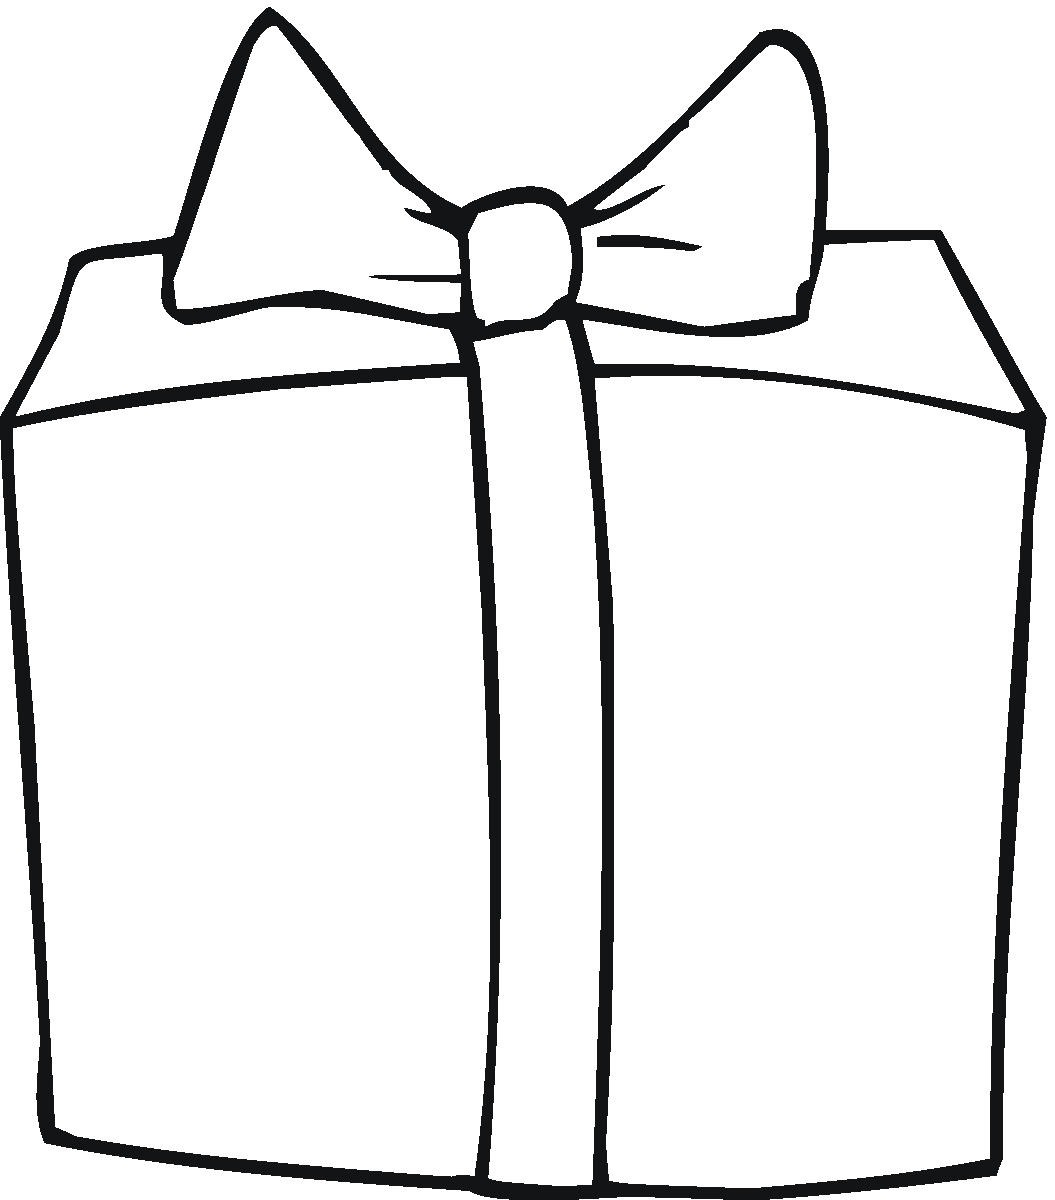 Present clipart black and white 6 » Clipart Station.